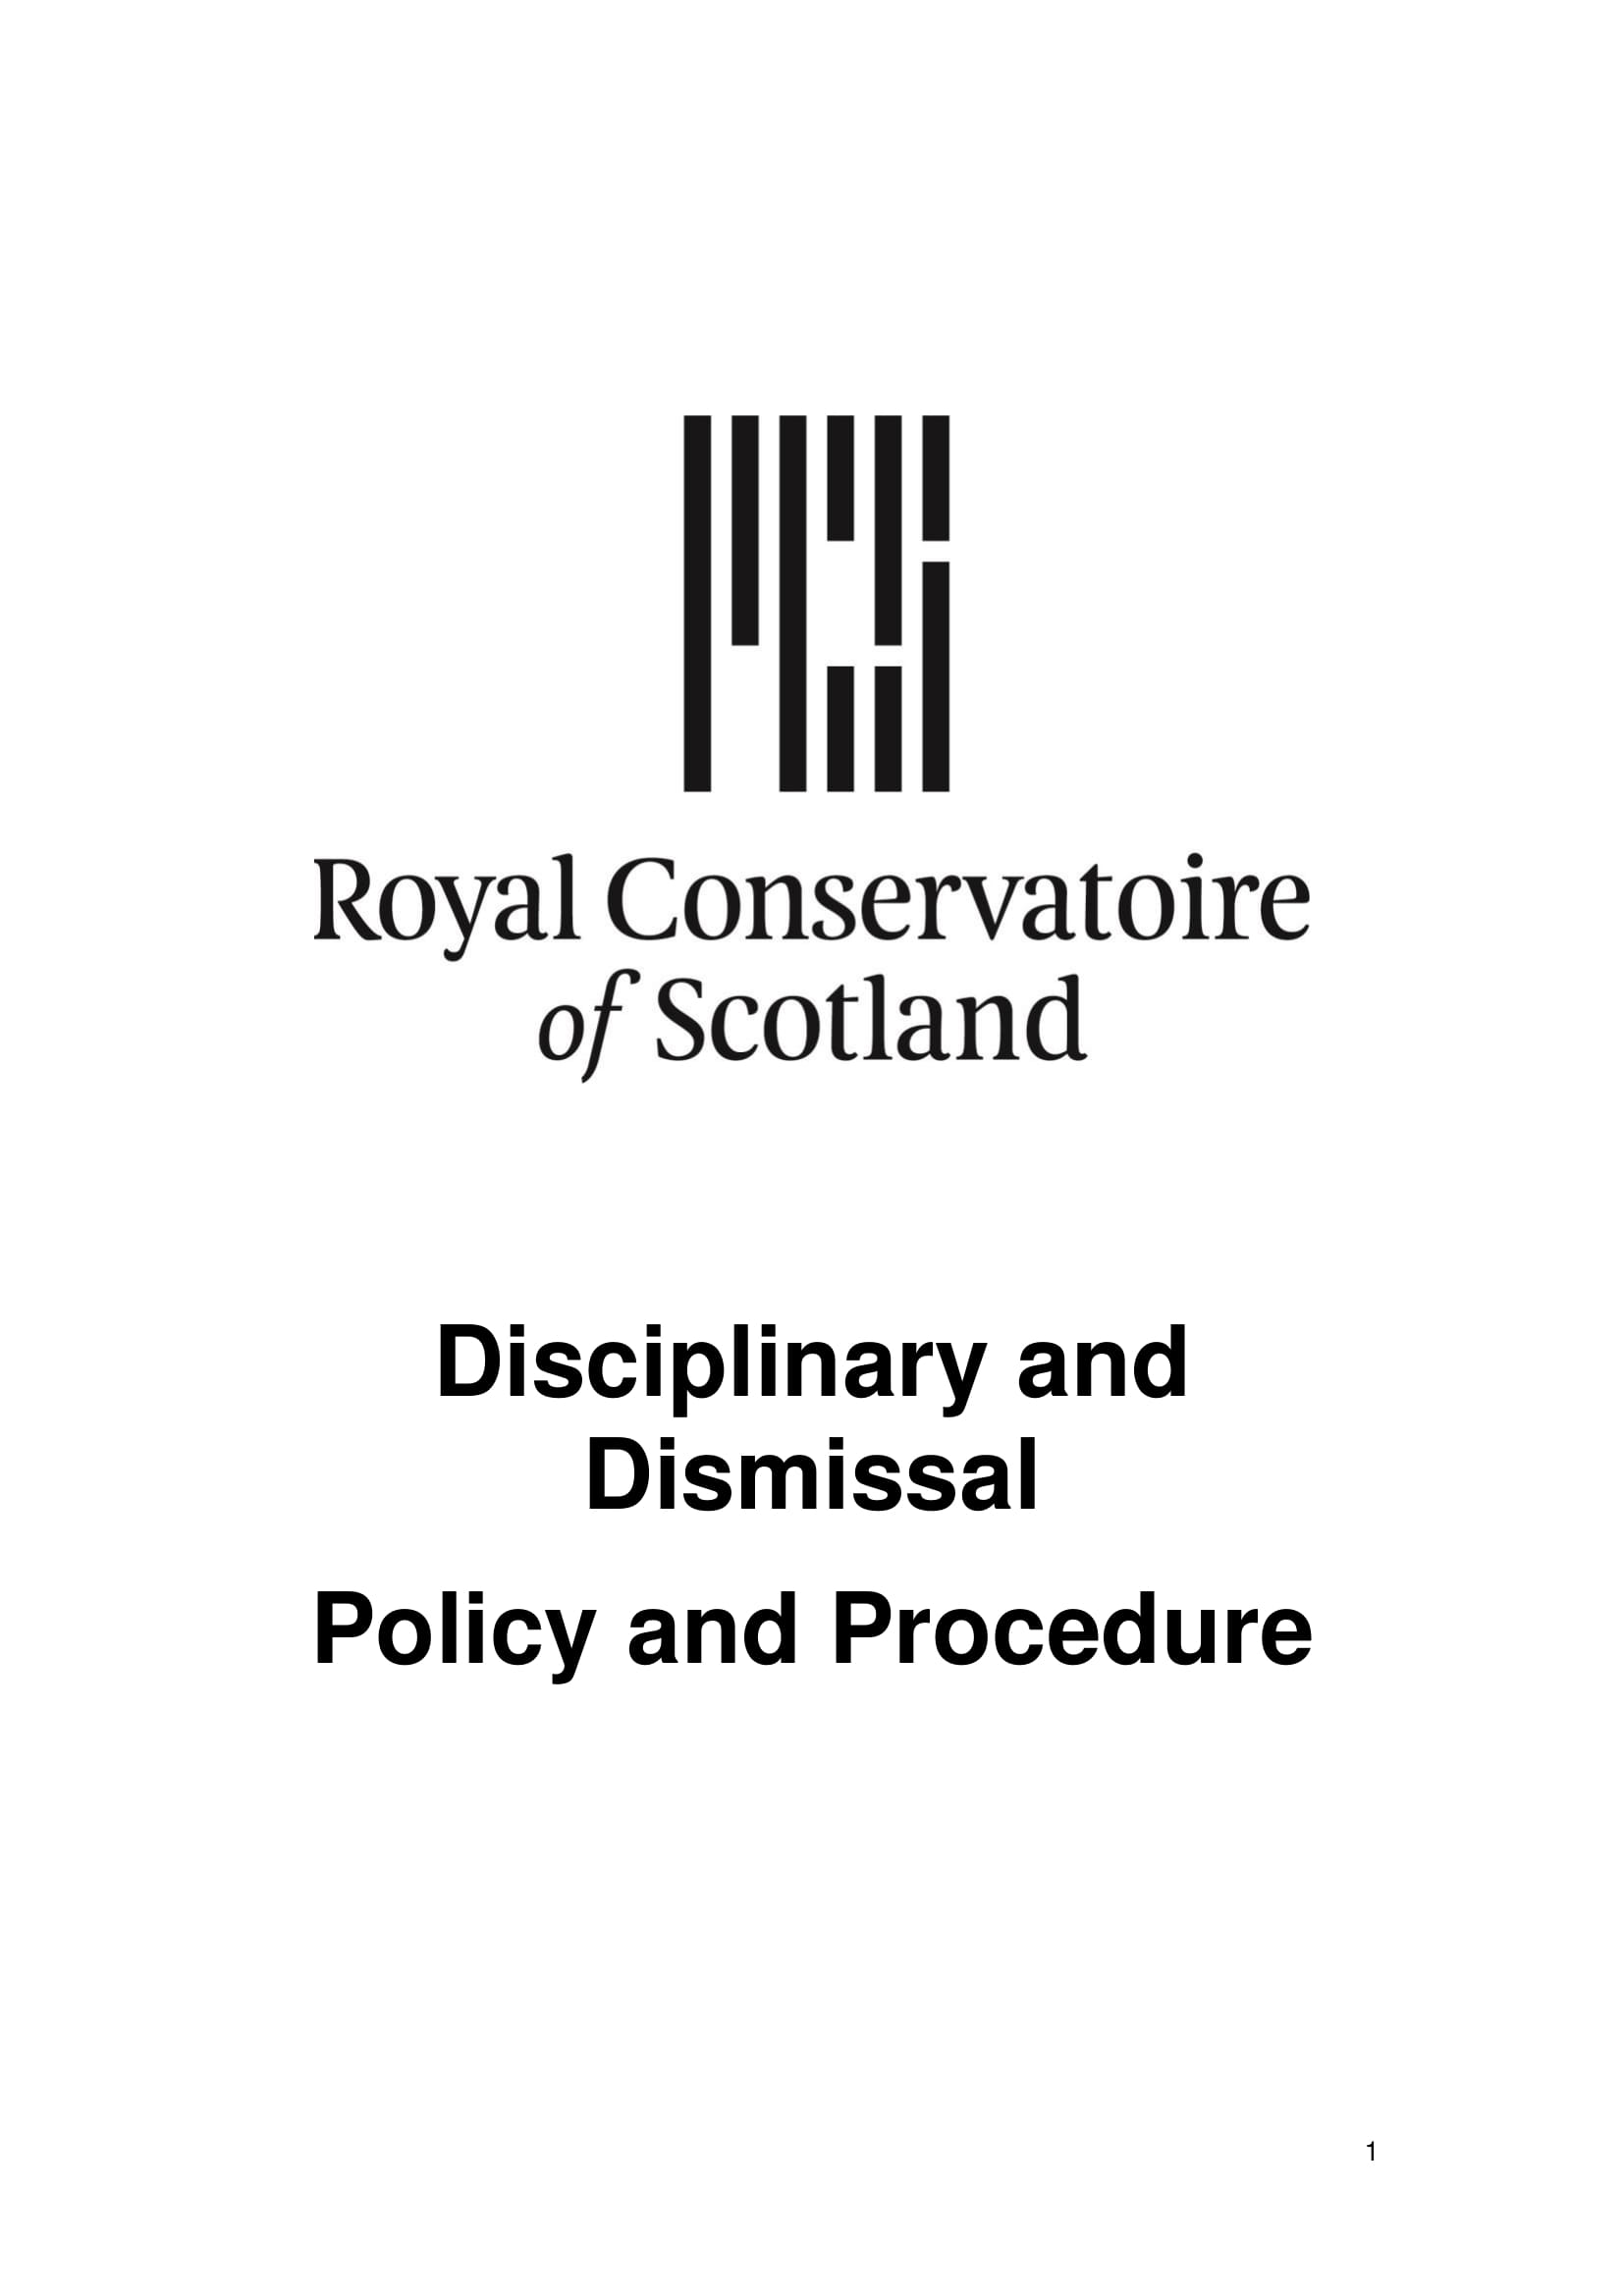 disciplinary and dismissal policy and procedure